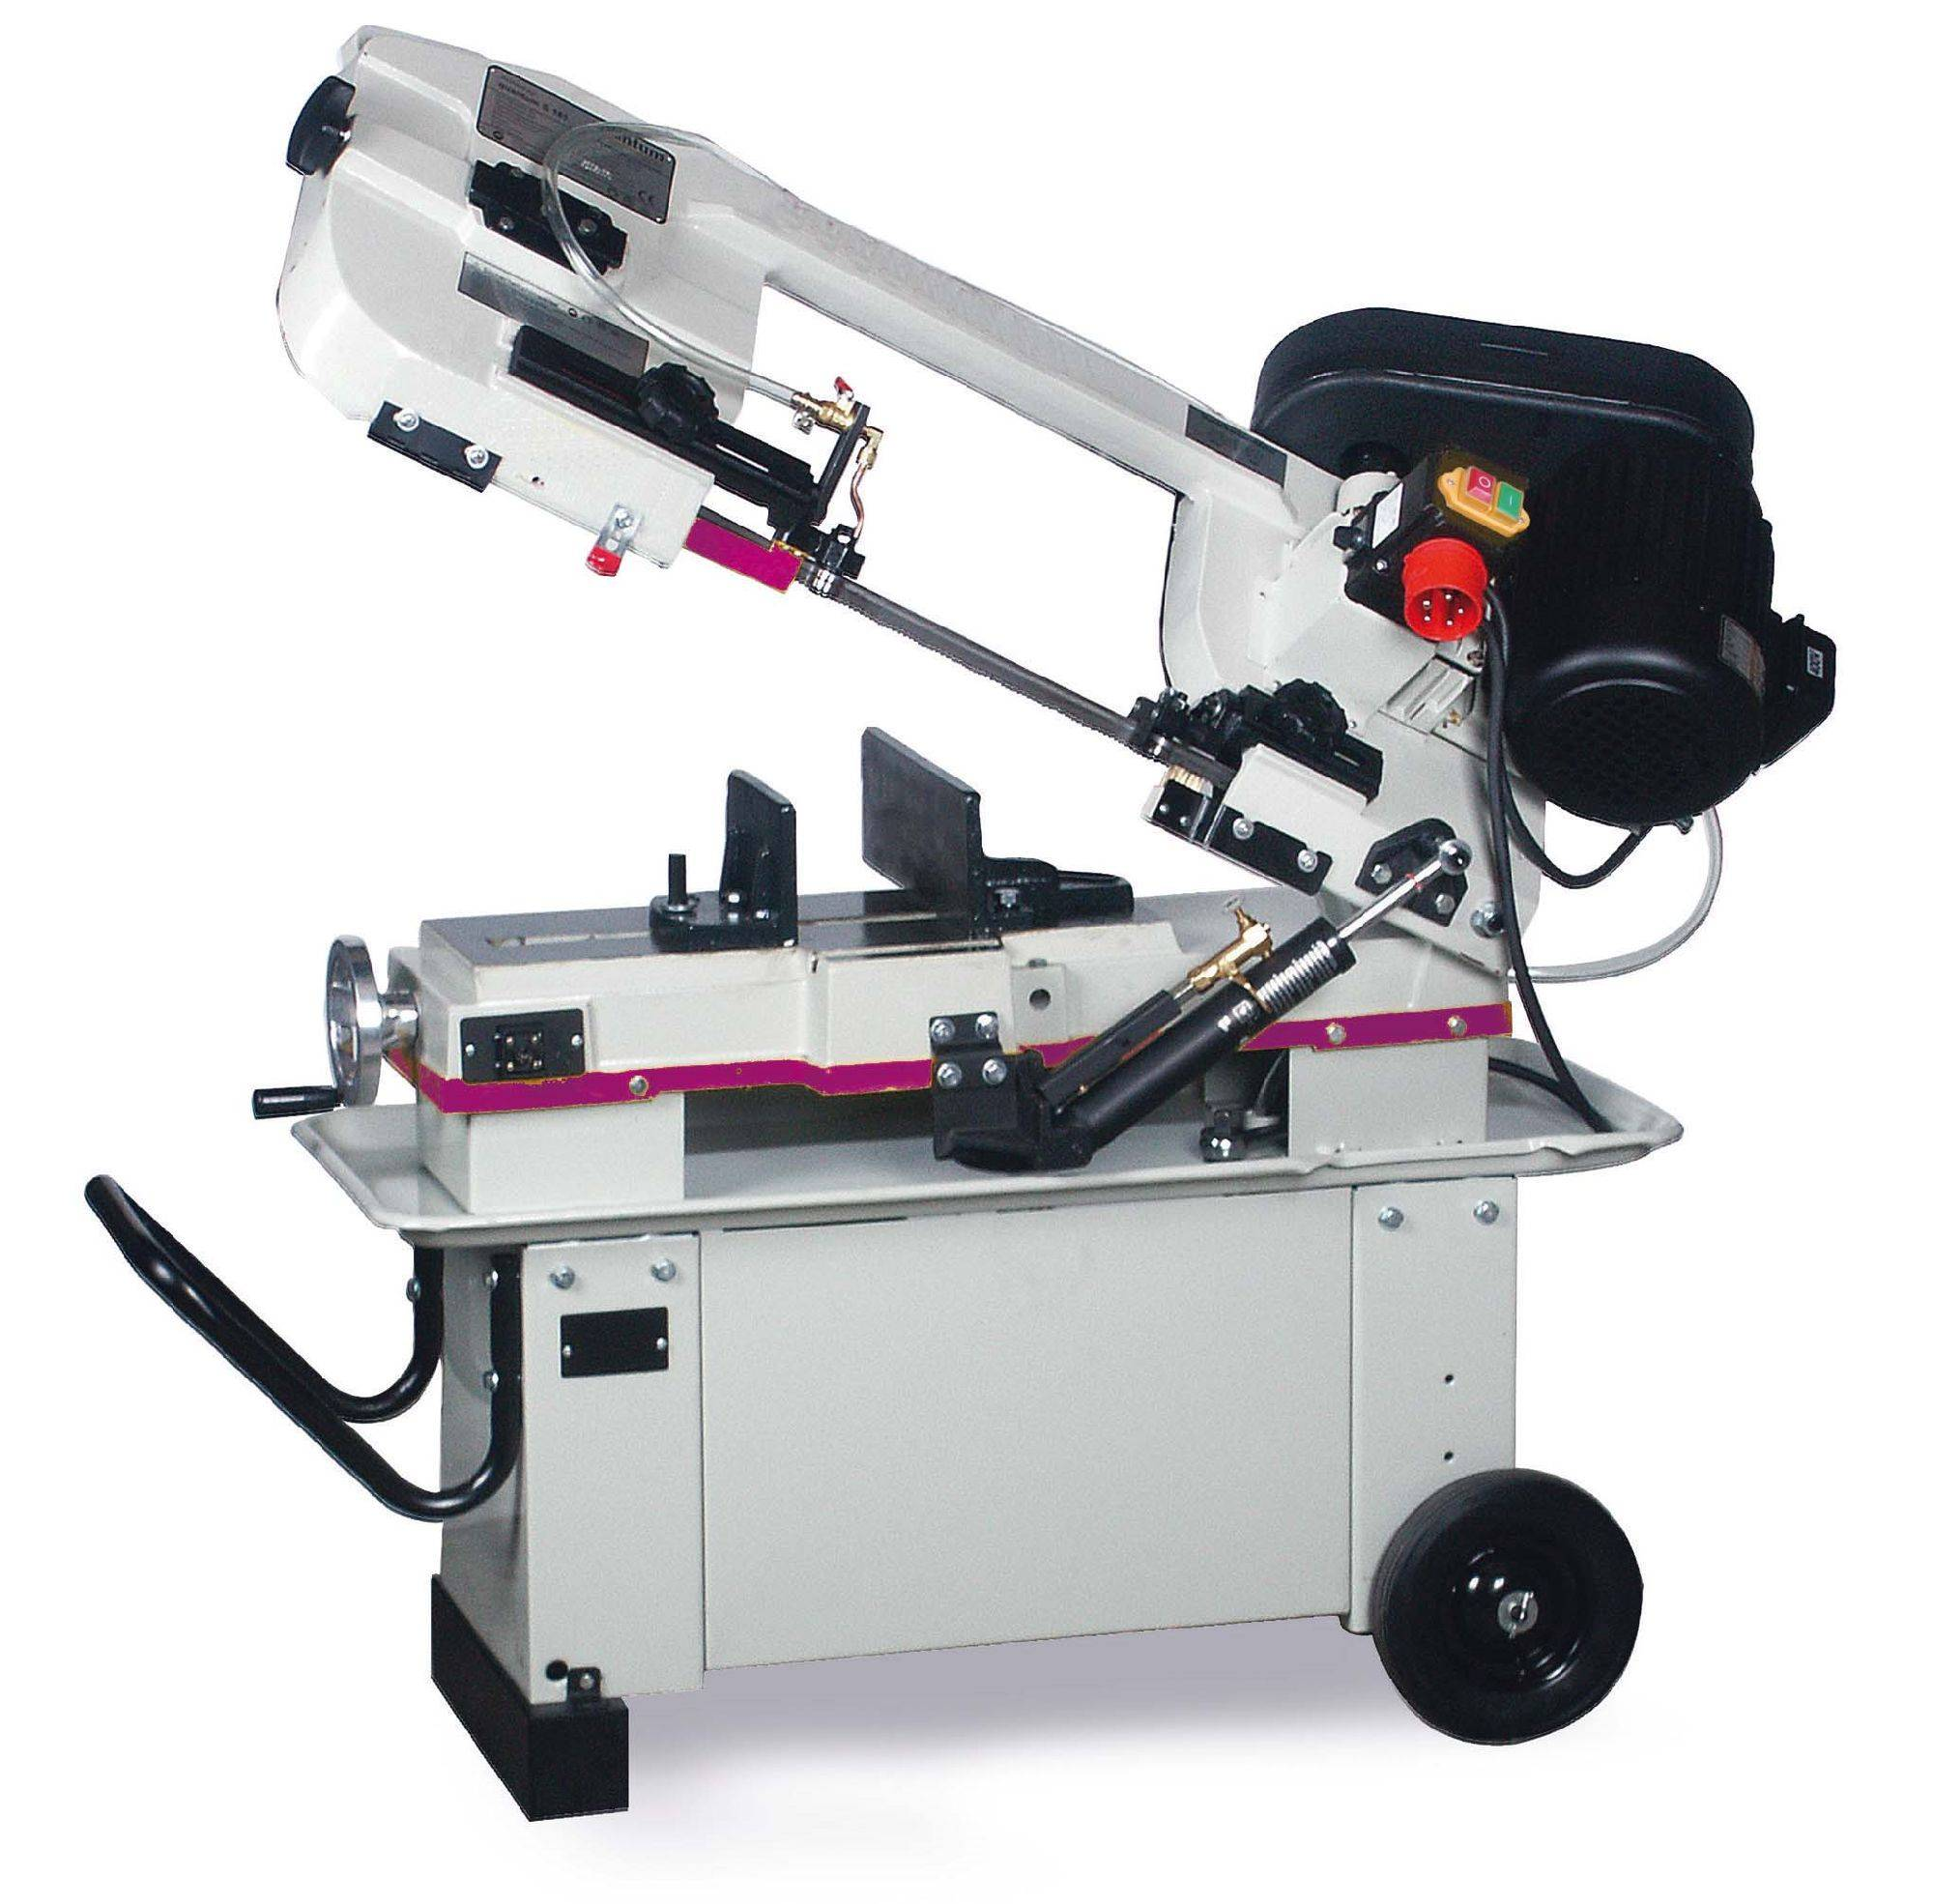 Optisaw Scie à ruban mobile - ø 178 mm - courroie - 230V OptiSaw S181-230V